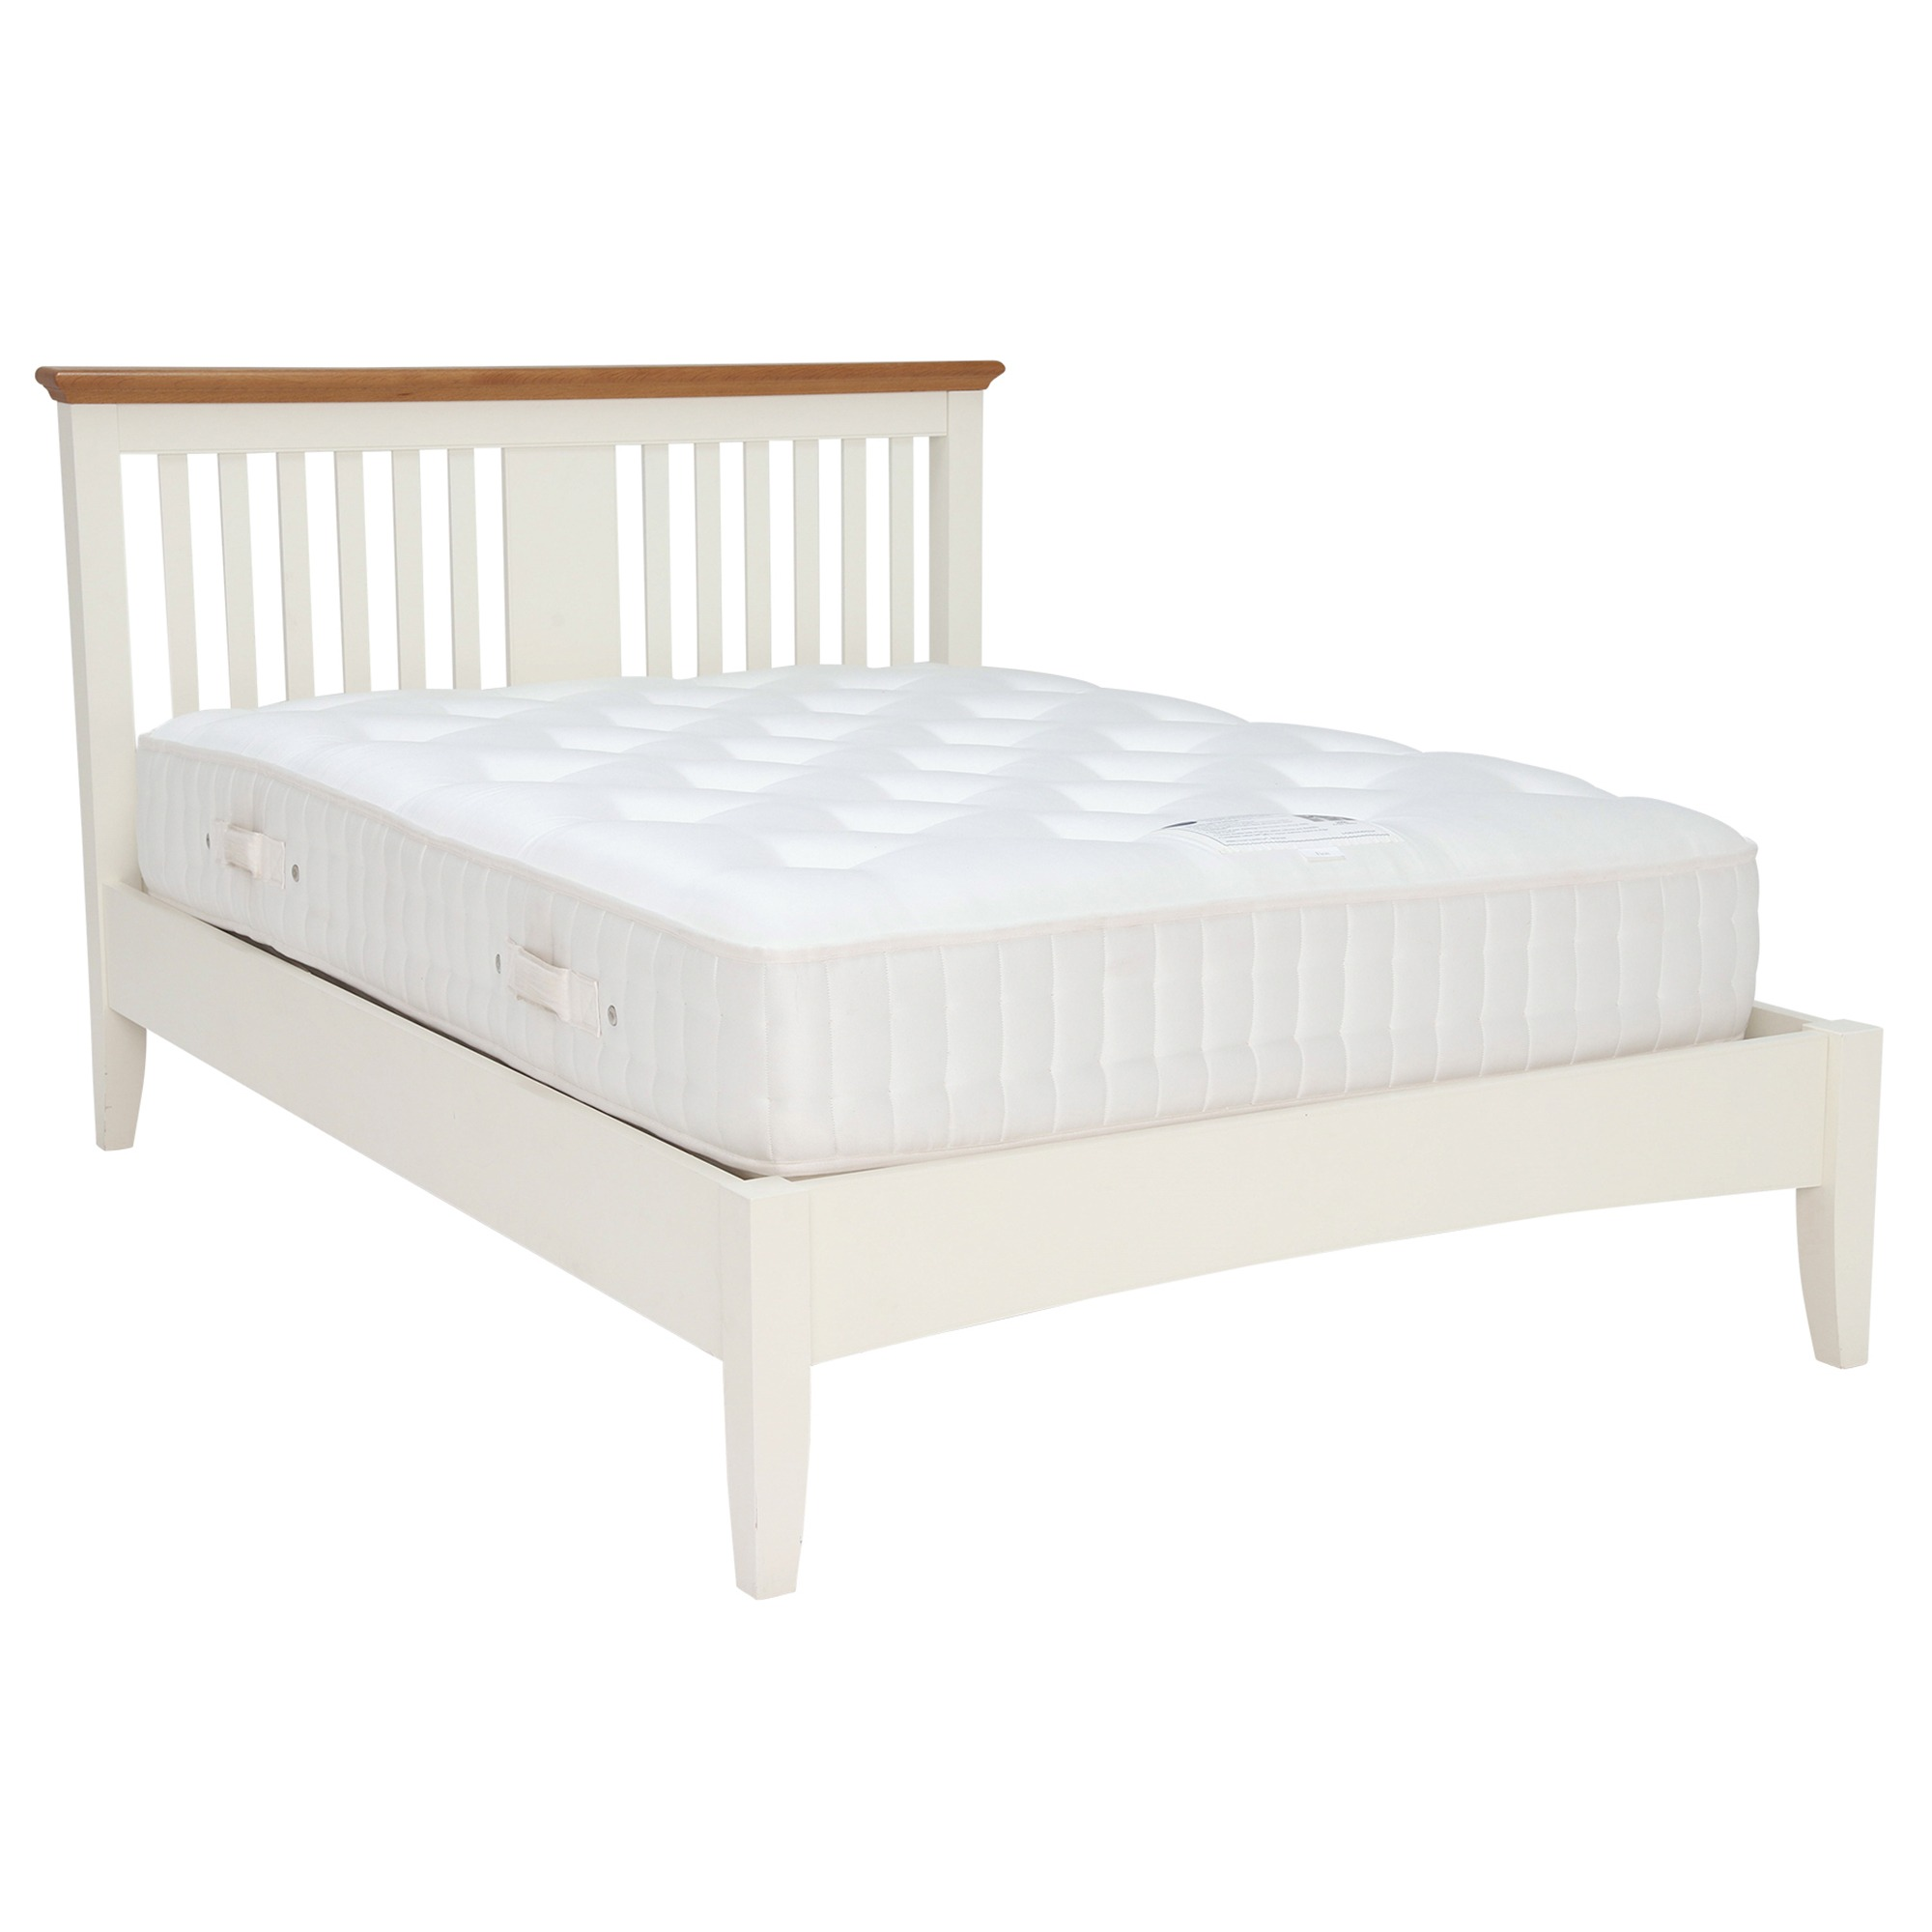 KYRA TWOTONE BEDFRAME - WITH MATTRESS